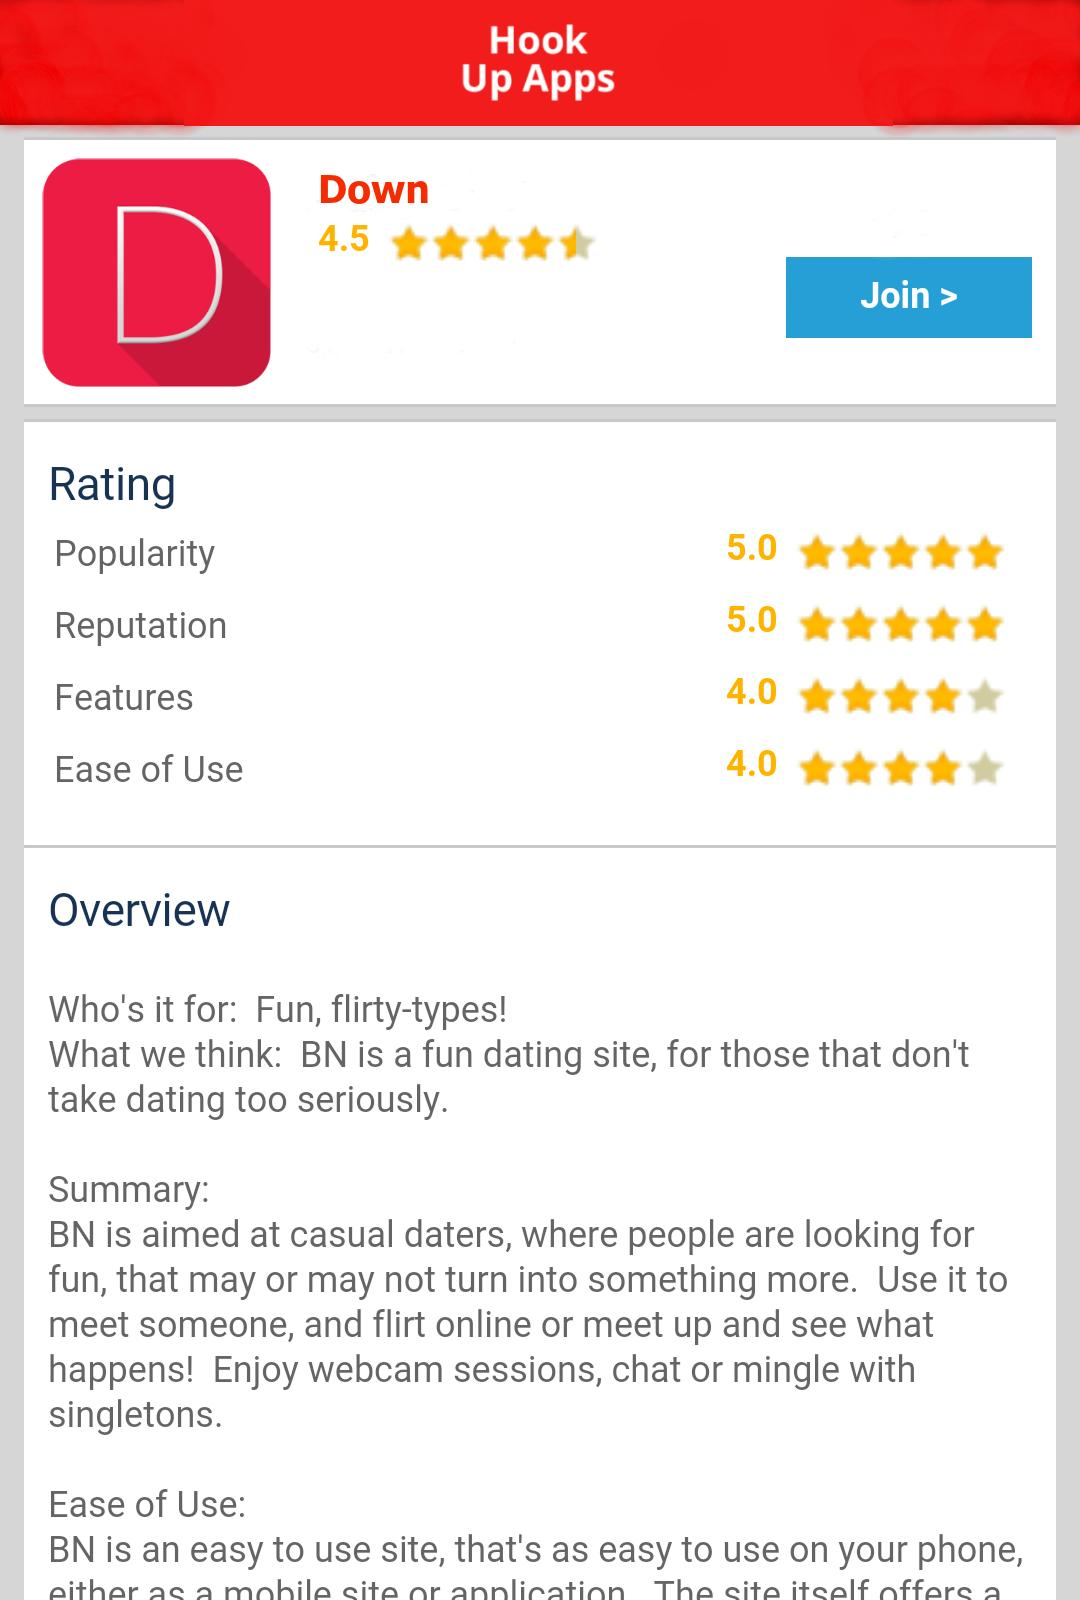 Hook Up Free Download For Android